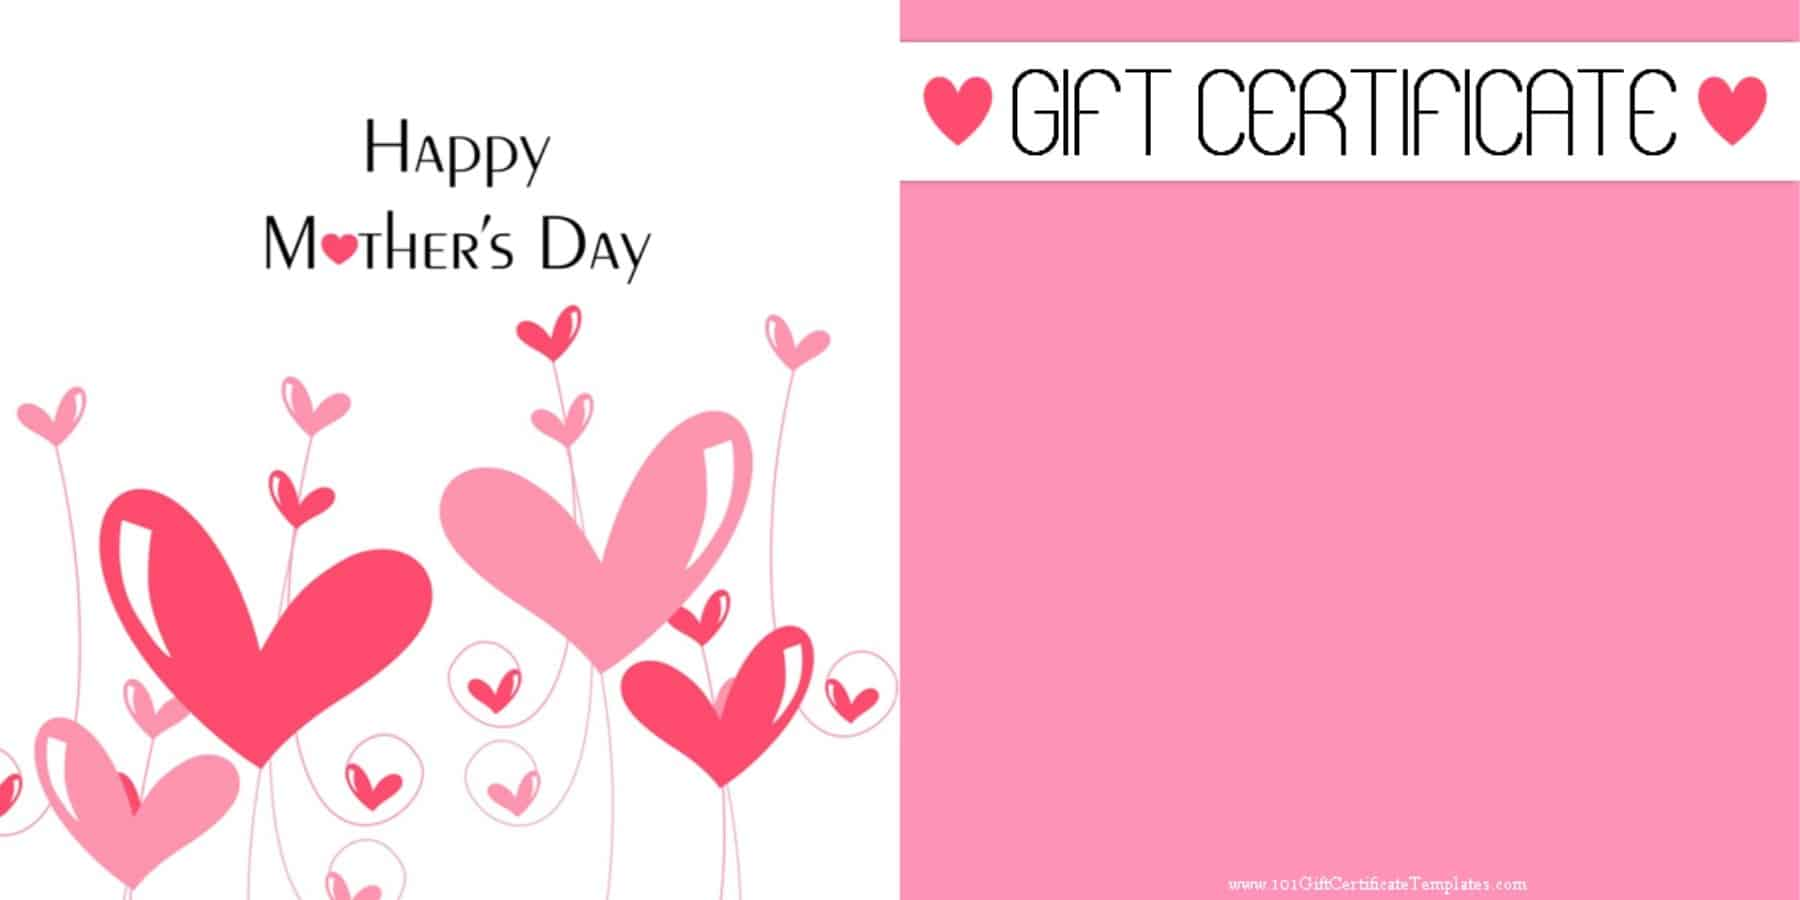 61 Visiting Mothers Day Cards Templates Microsoft Word Maker by Mothers Day Cards Templates Microsoft Word